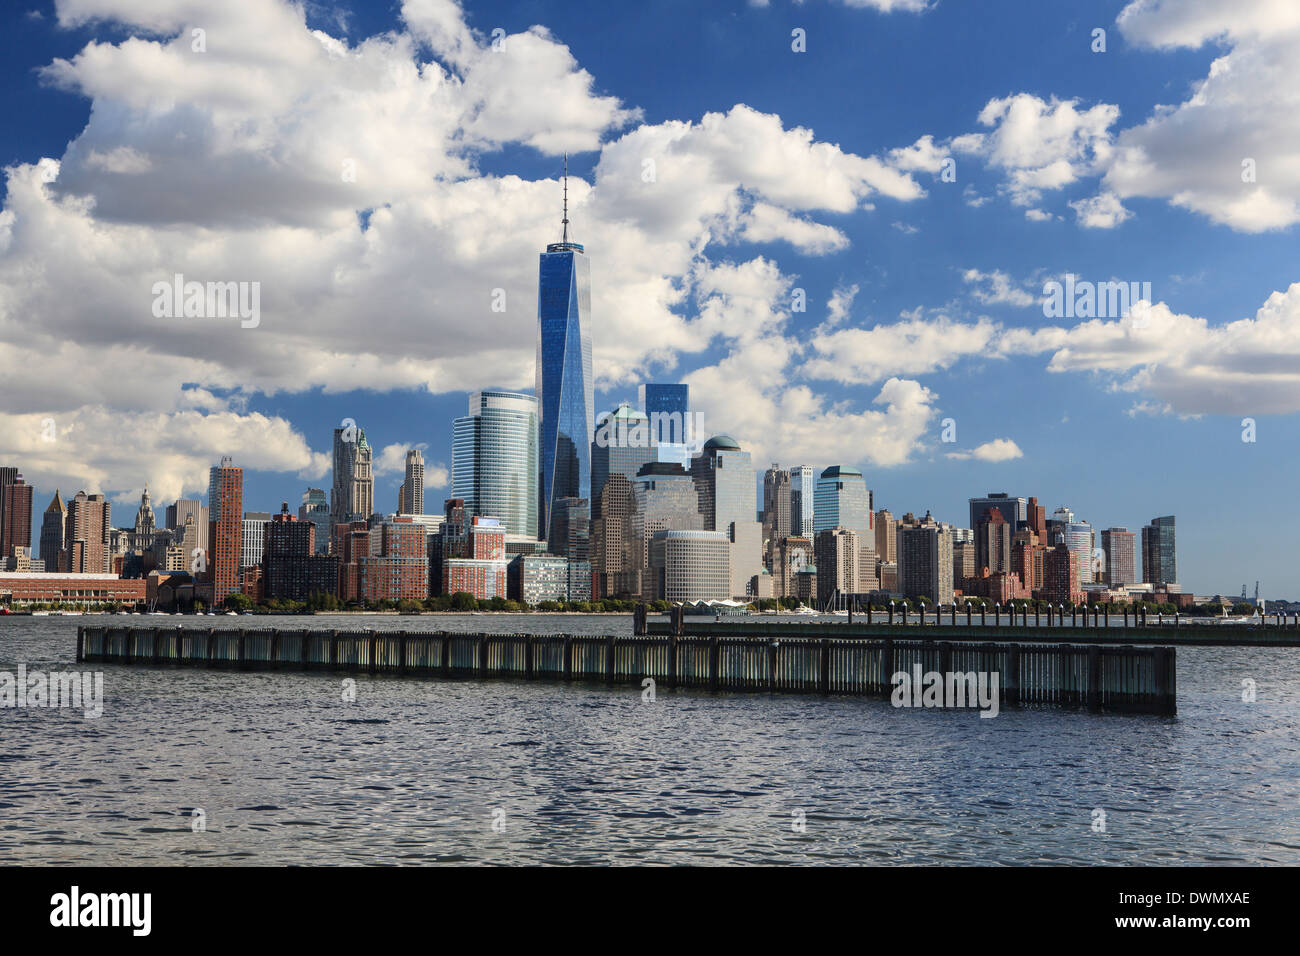 1 World Trade Centre Tower and New York's financial district as seen from Liberty State Park, New York, United States of America - Stock Image